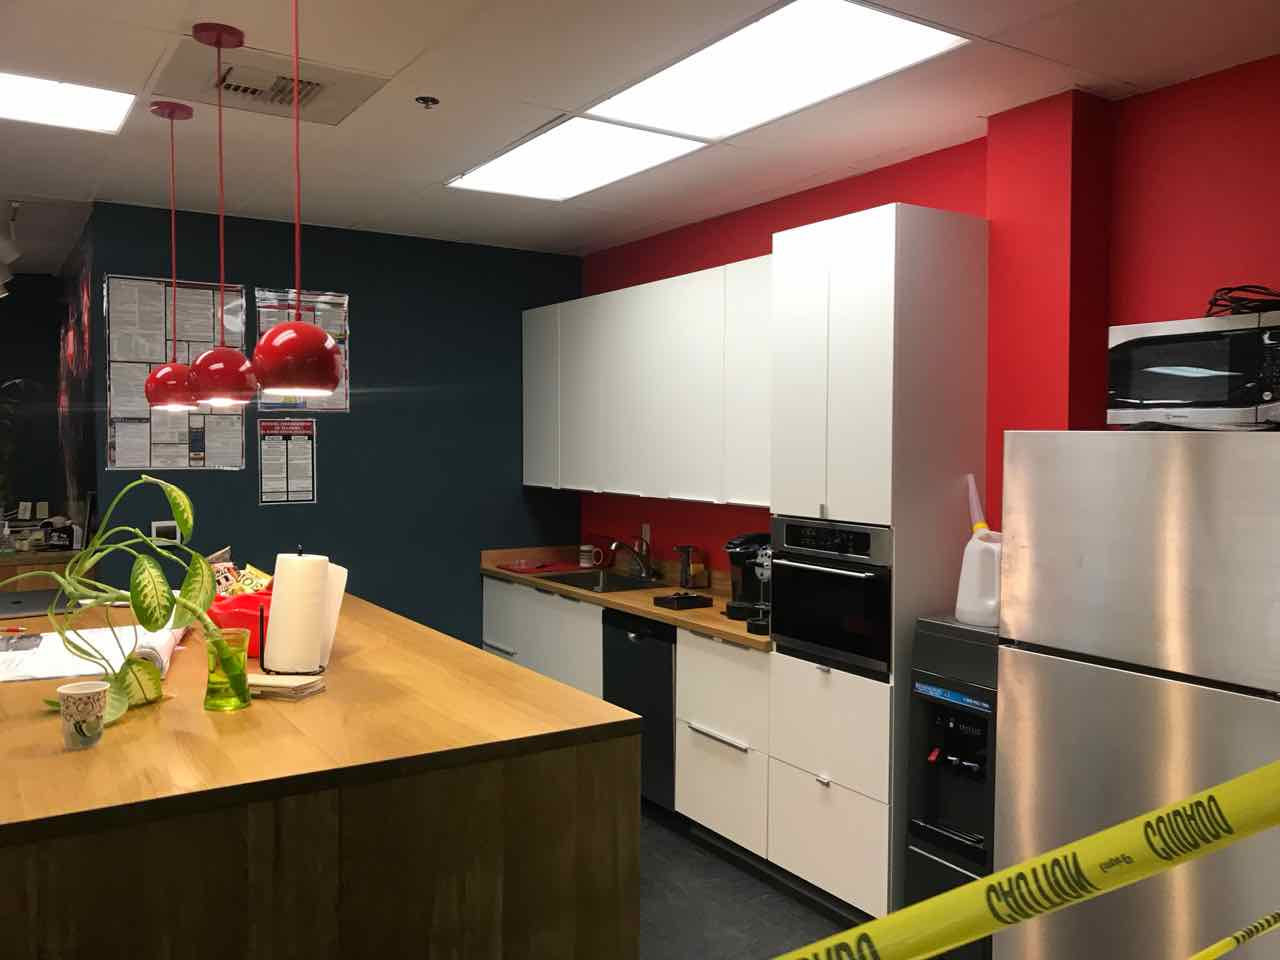 Commercial kitchen inside office suite for 50 employees. Complete remodel and upgrade, including cabinets, plumbing, custom island, painting and flooring.